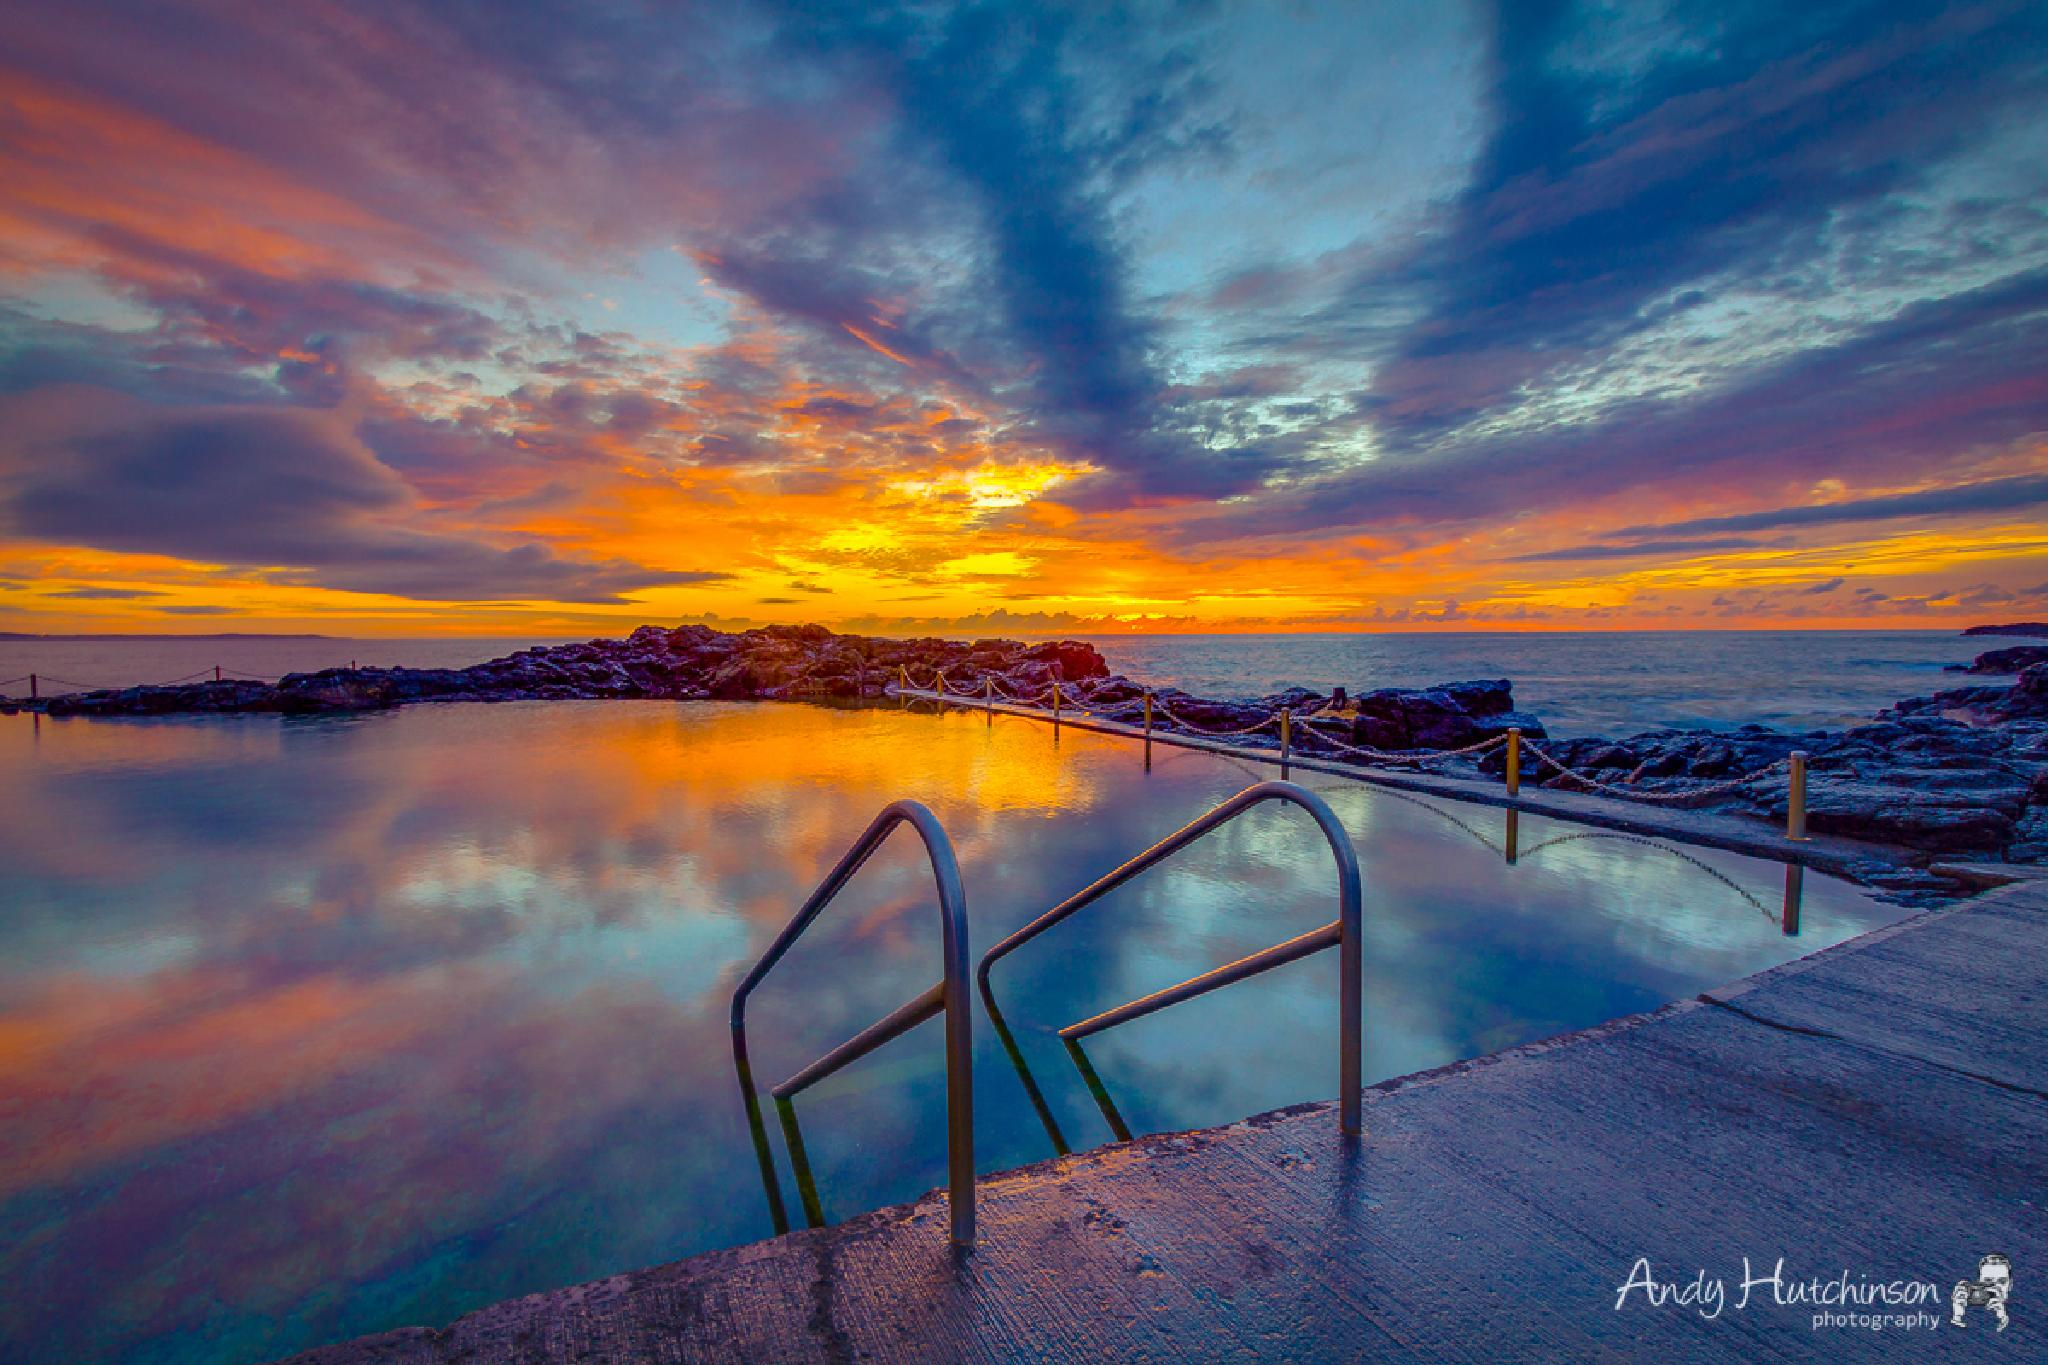 Swim in the Sunrise by Andy Hutchinson